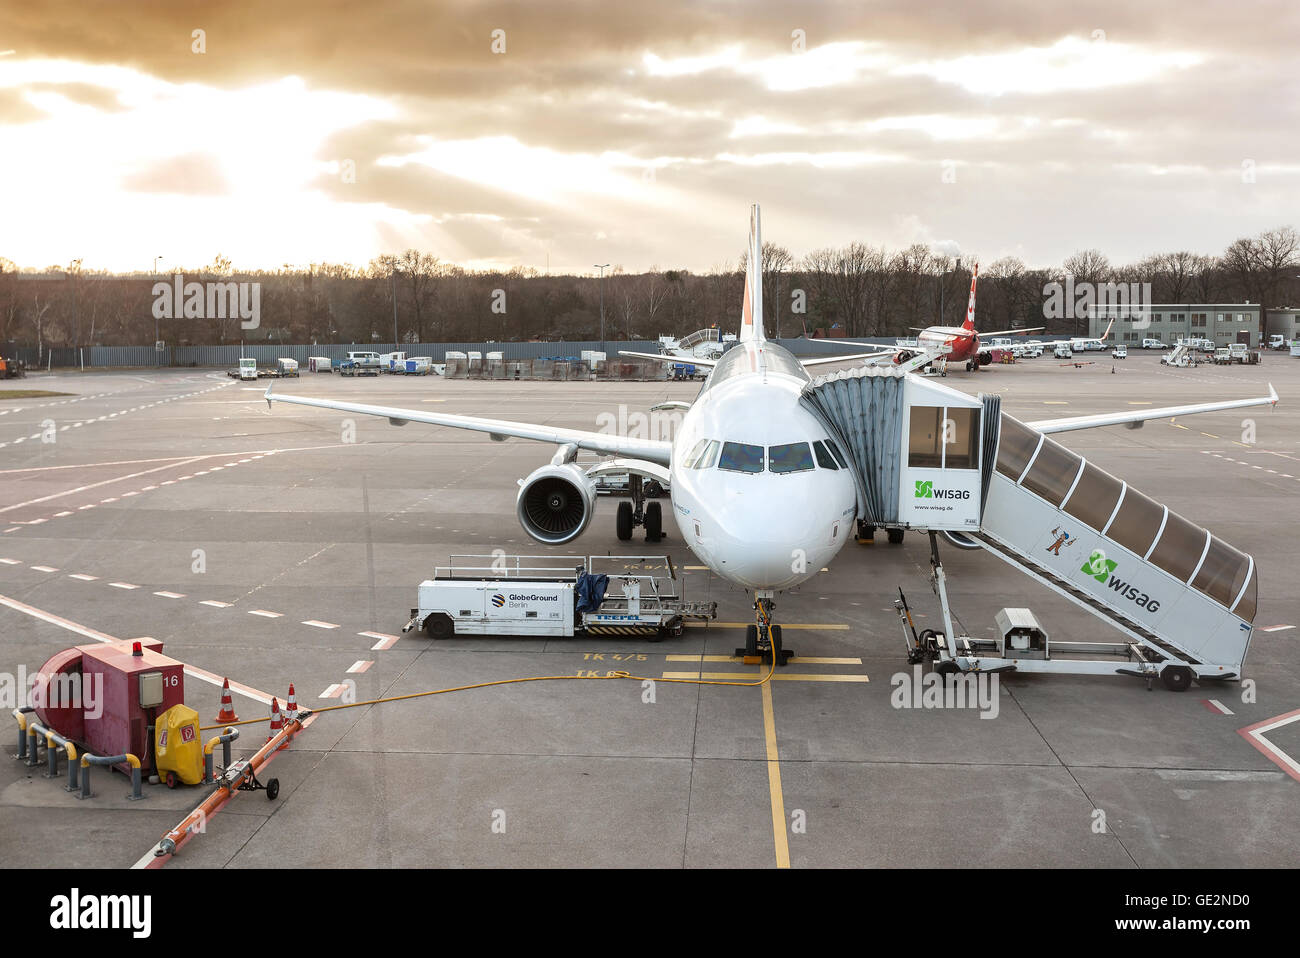 Sunset over plane at the Tegel airport. Stock Photo